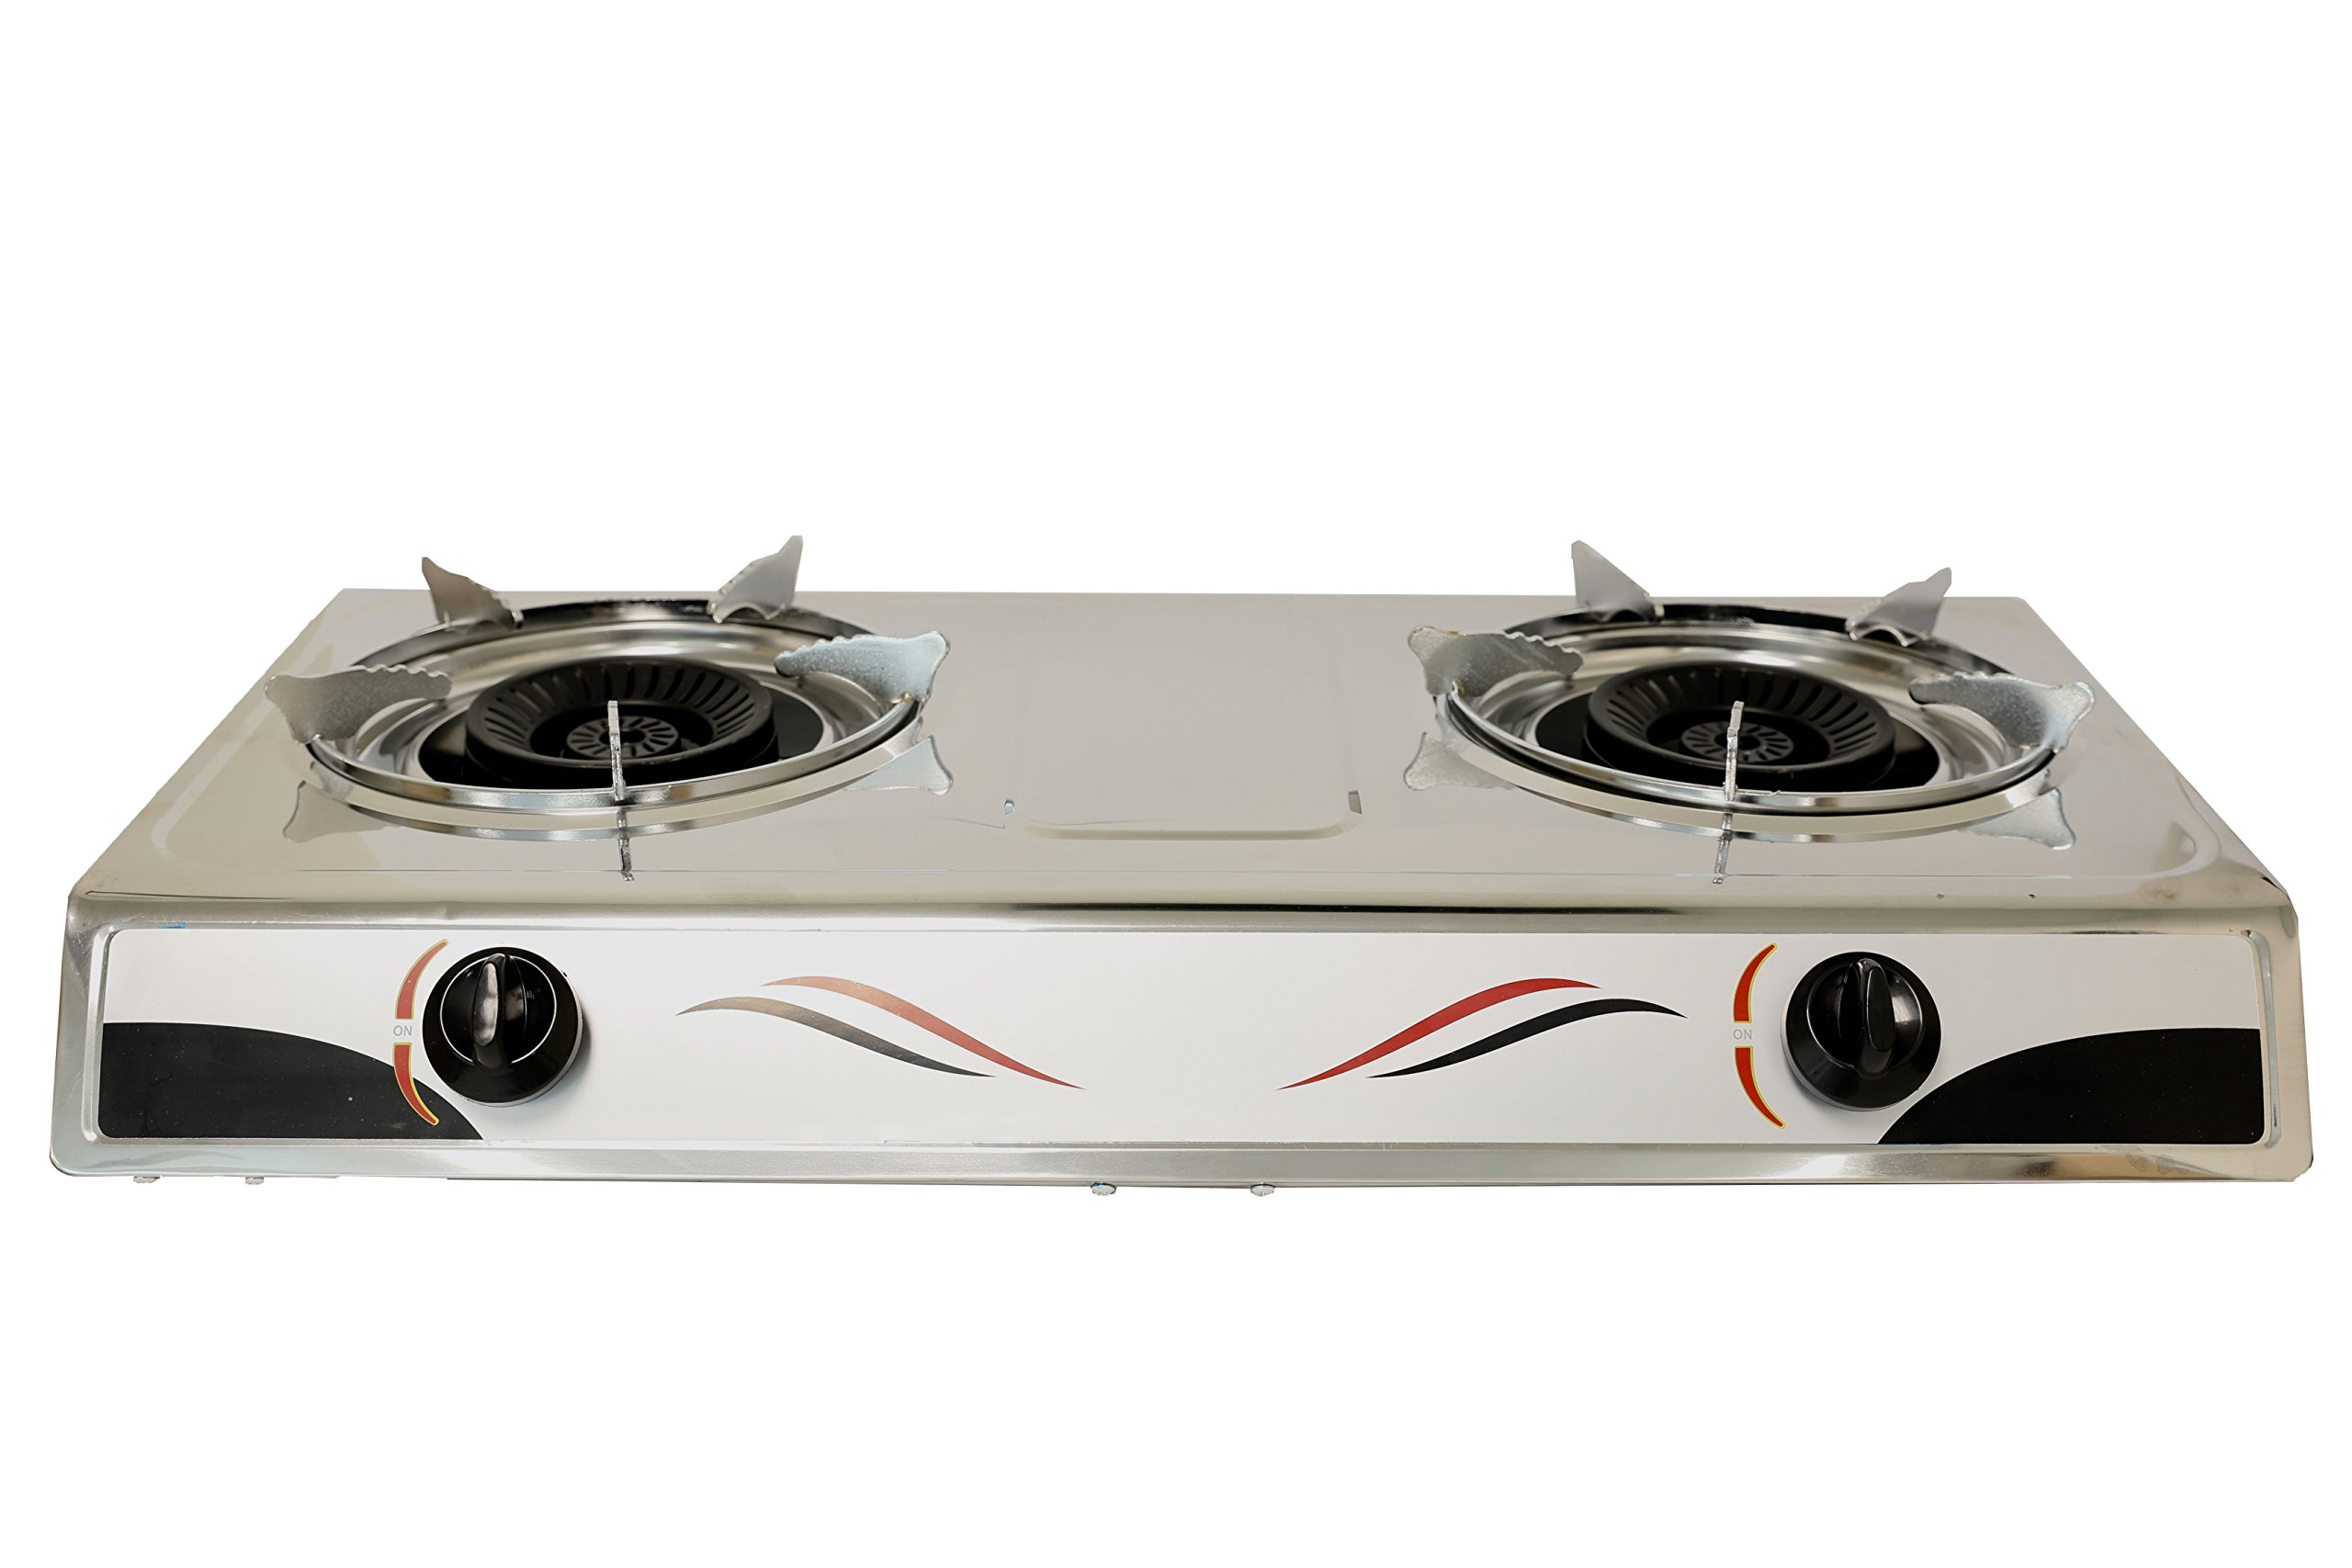 Bioexcel Double Burner Stainless Steel Cooktop Dual Gas Stove Burner Portable Auto Ignition Buffet Range Comes With Auto Strike - Perfect for Kitchen and Camping